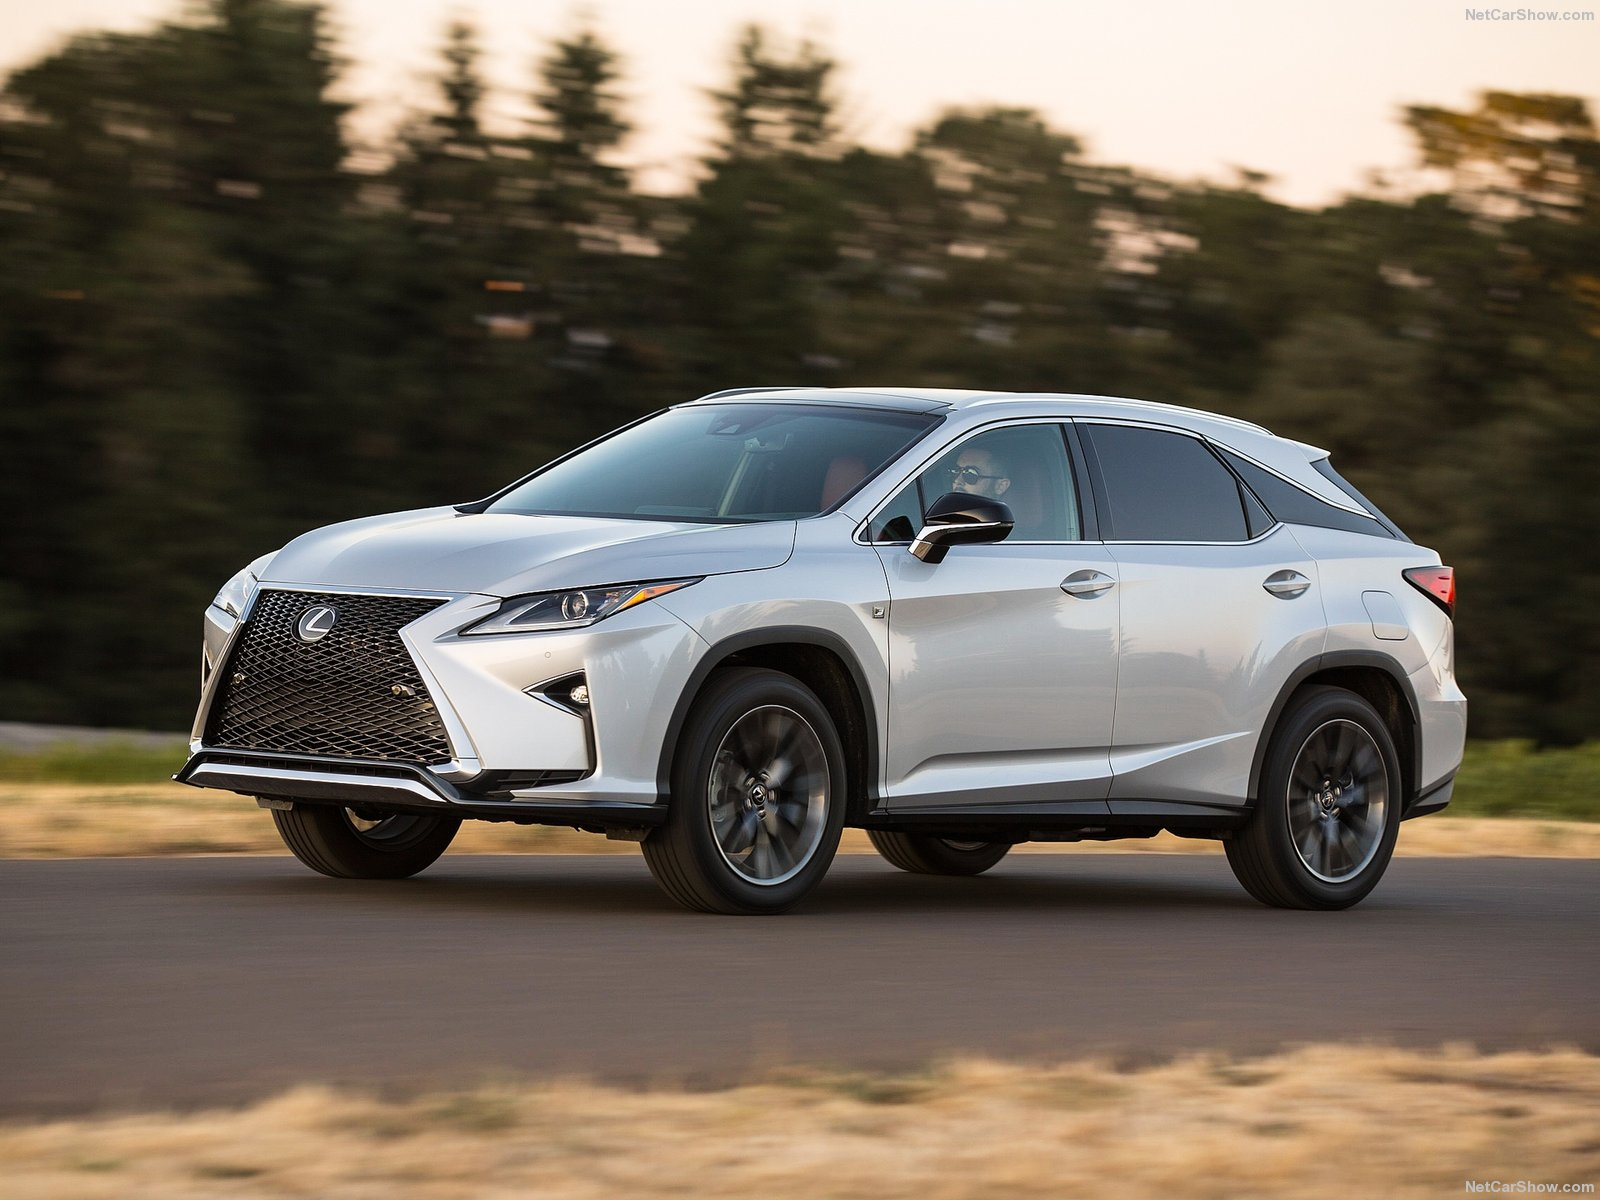 cars manufacturer gallery lexus worthy cargurus pictures exterior rx front view quarter pic